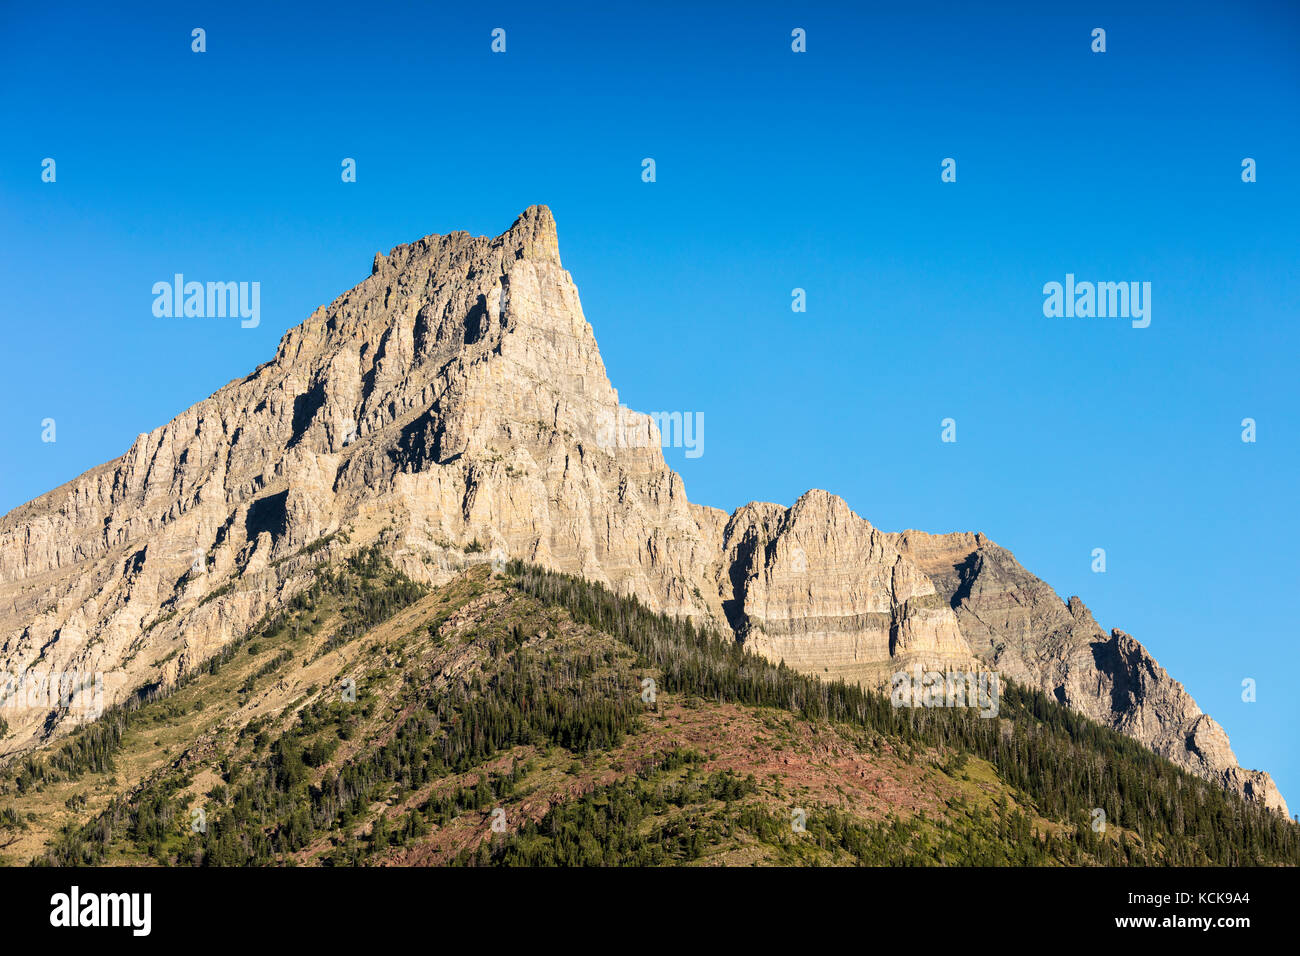 Mount Anderson or Anderson Peak, Waterton Lakes National Park, Alberta, Canada - Stock Image